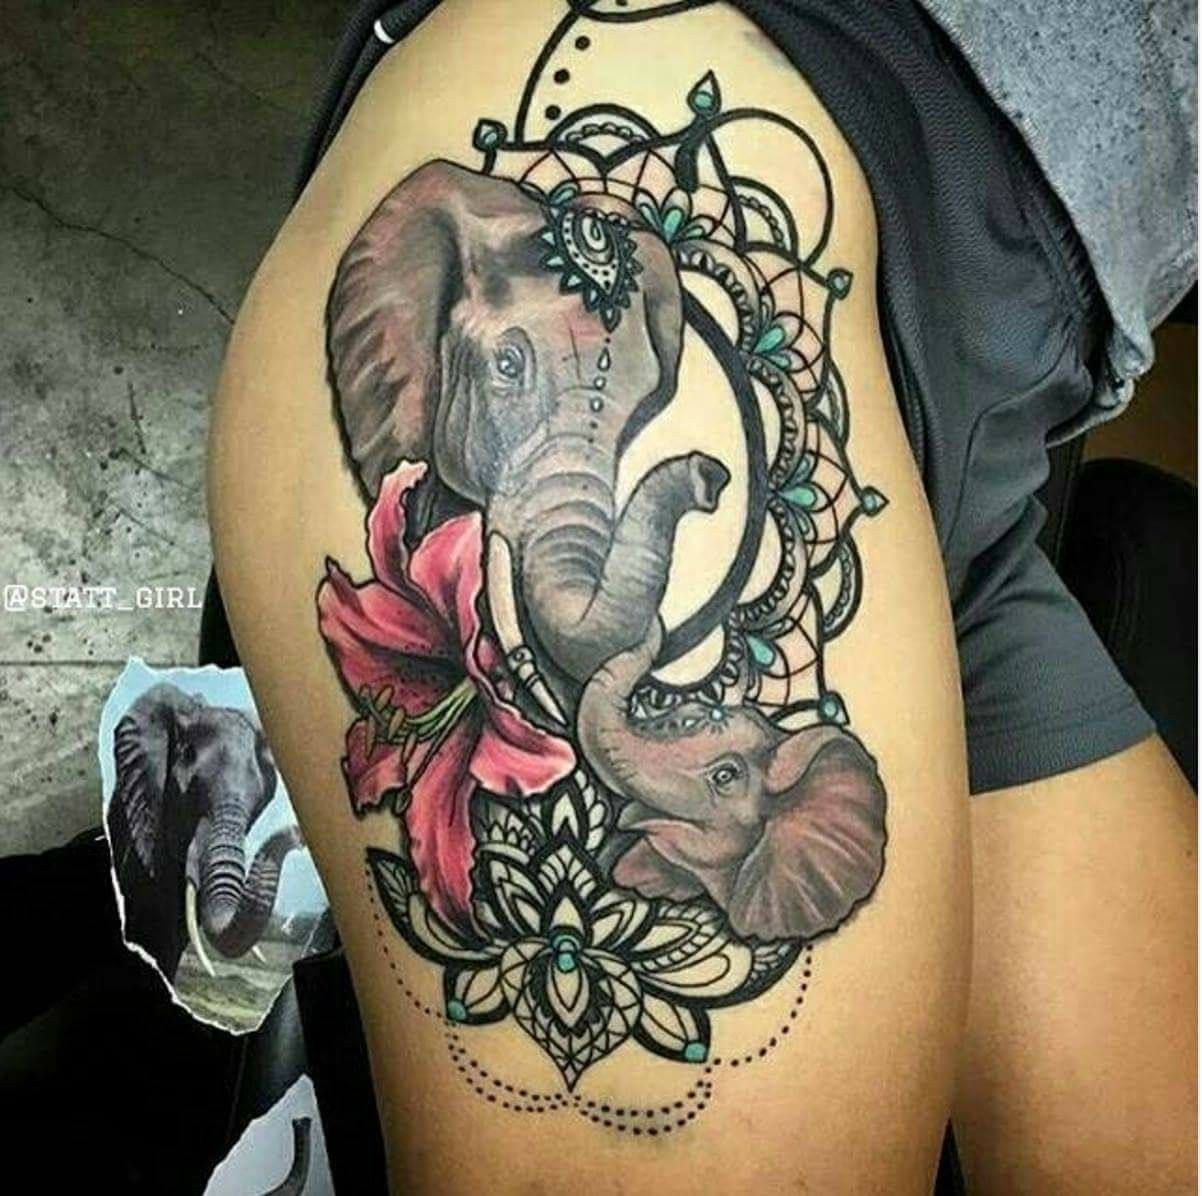 Elephant tattoo tattoos pinterest elephant tattoos tattoo and lily flower and elephant heads with mirror frames tattoo on side thigh izmirmasajfo